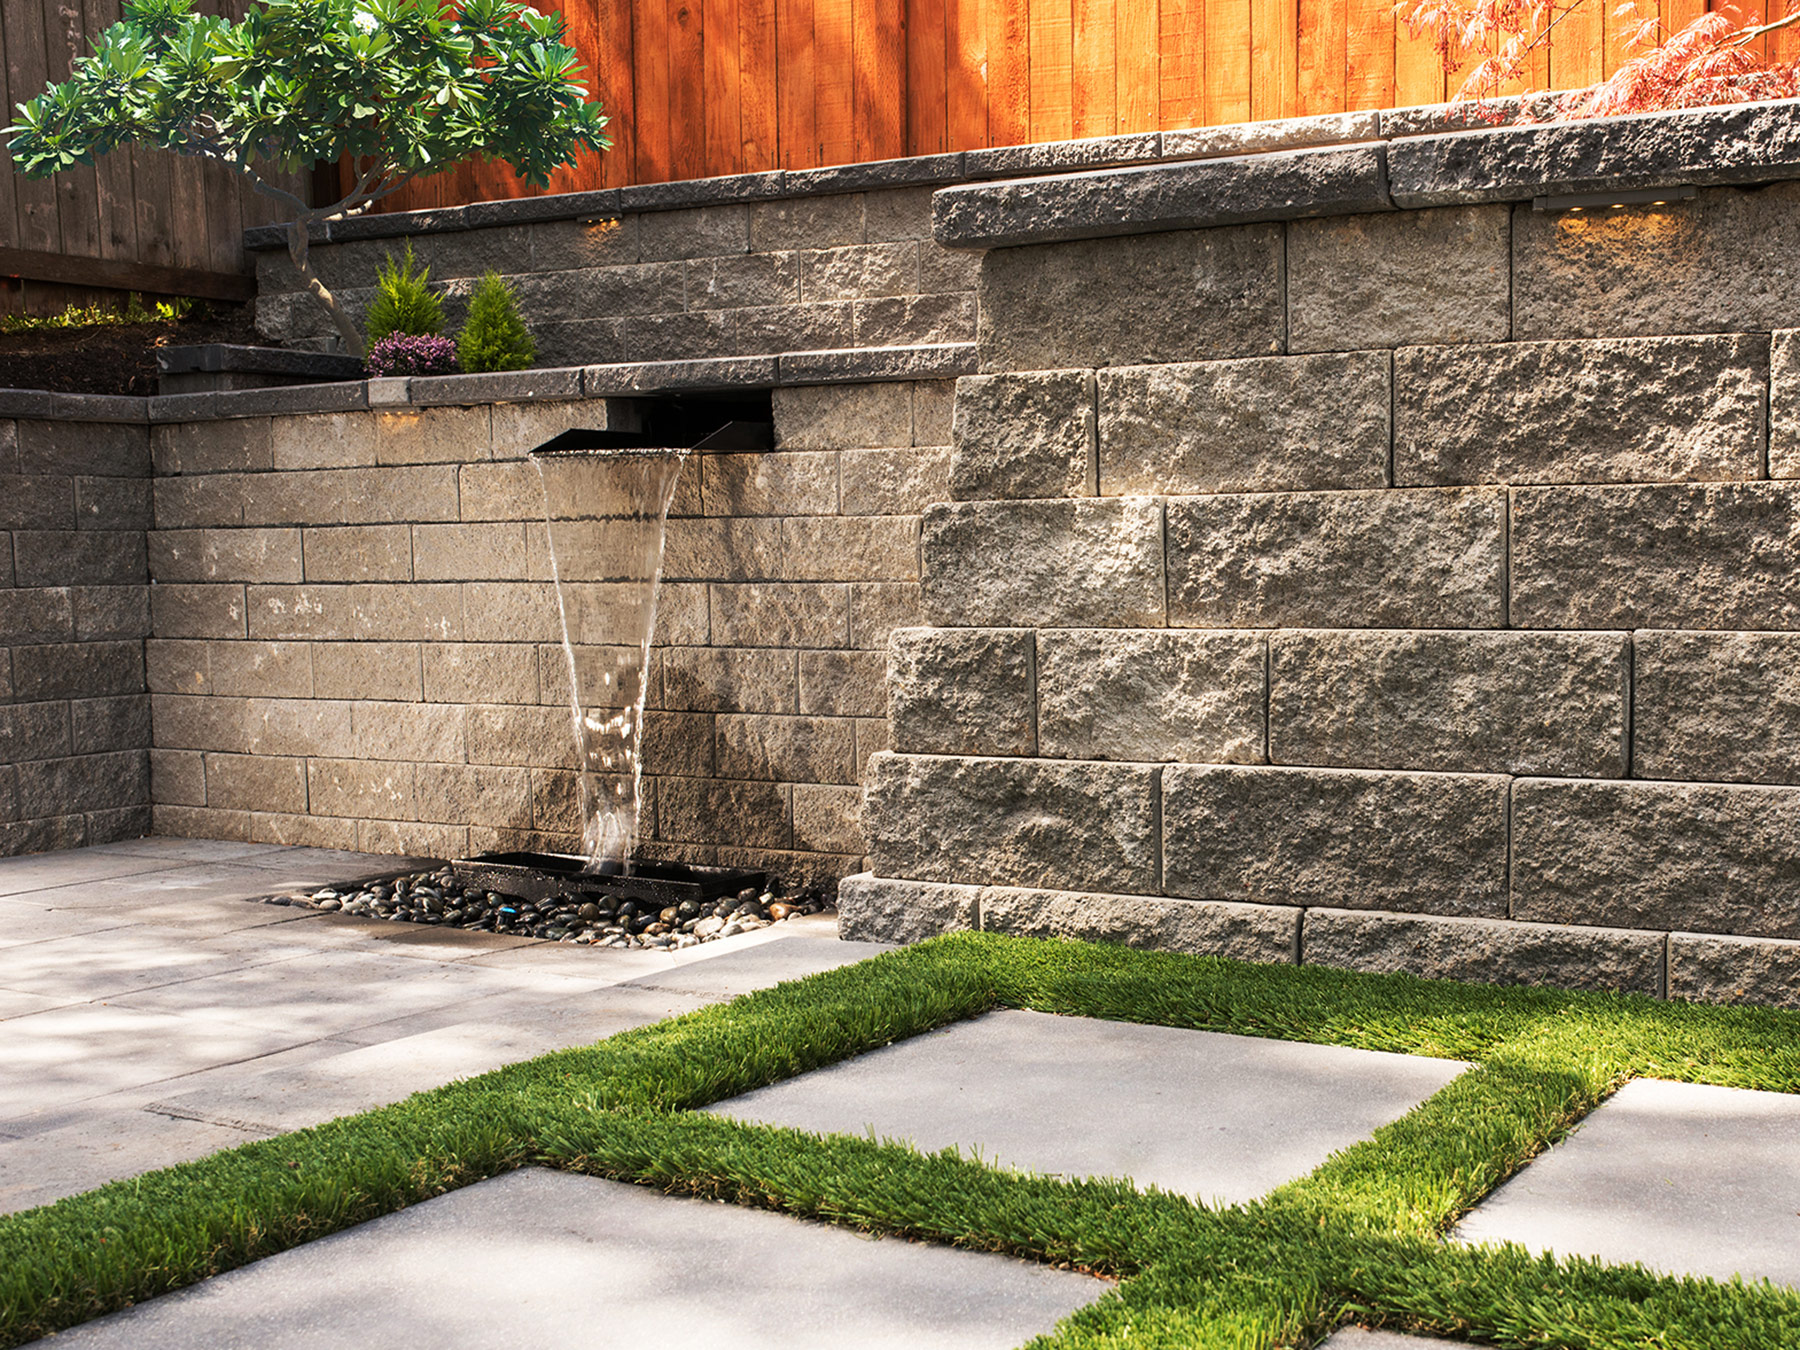 A photo of a backyard with a retaining wall, cement pavers, and a running fountain.